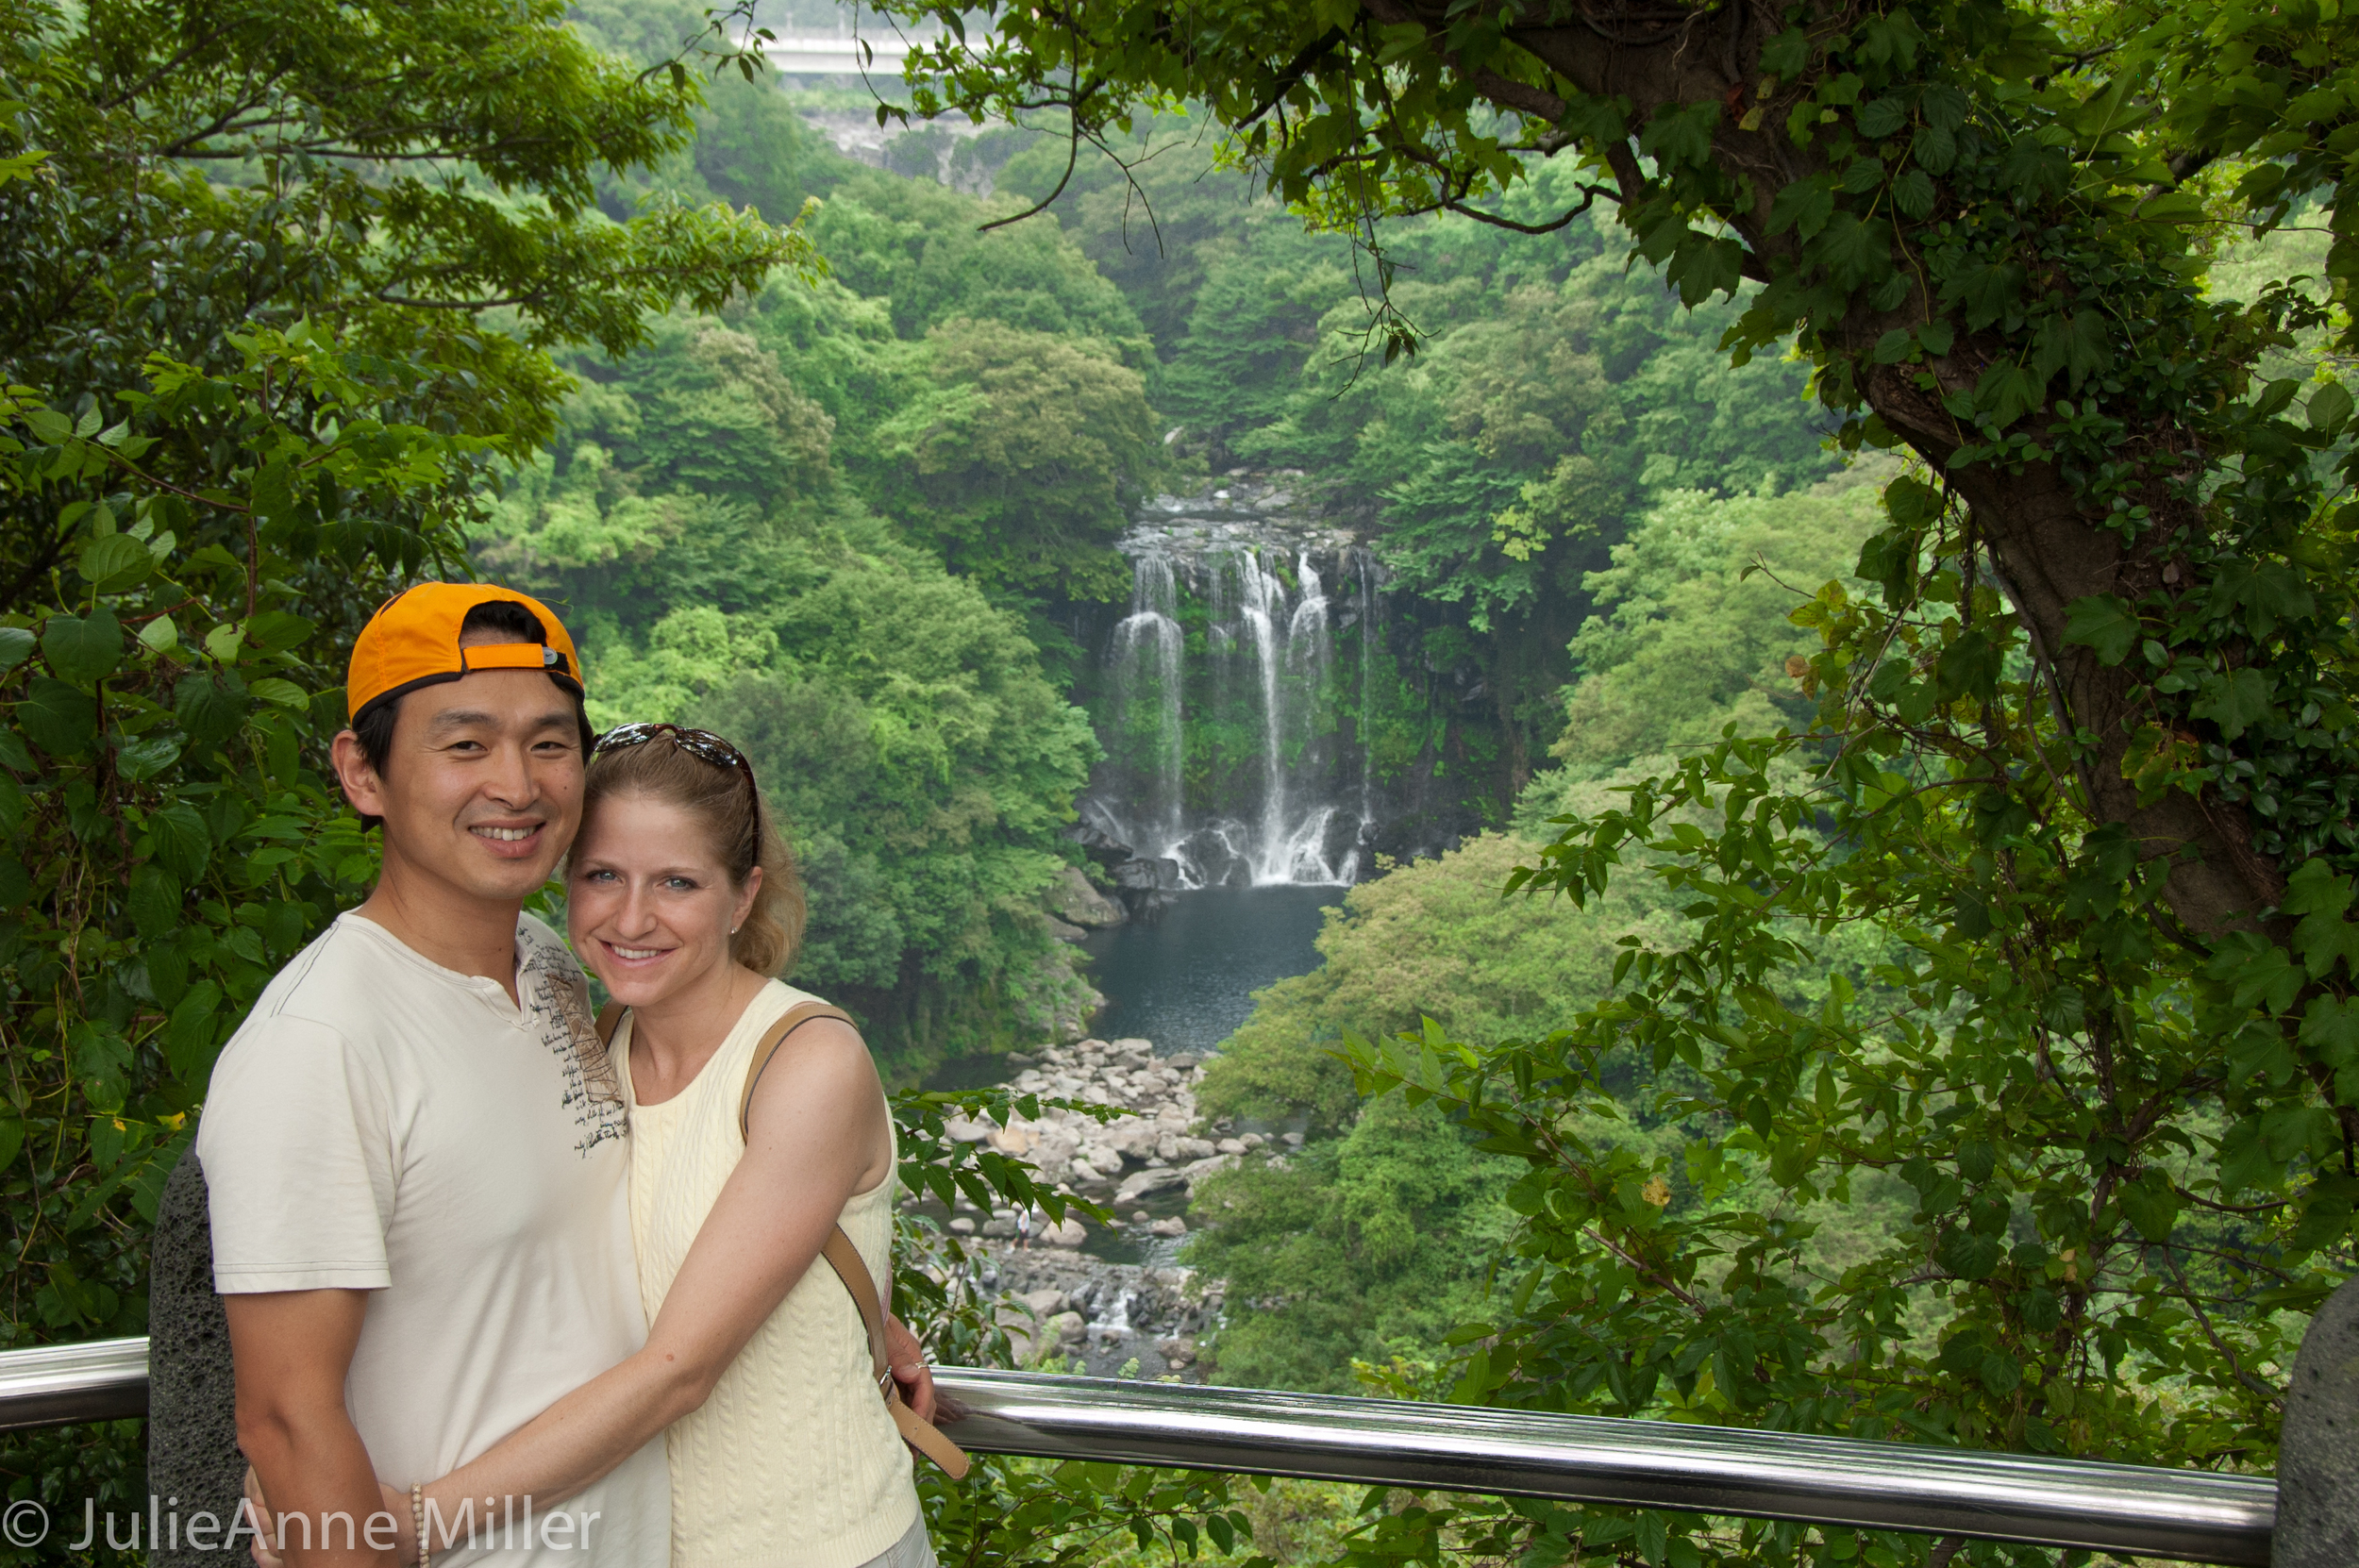 Every couple visiting jeju has this photo. :-)